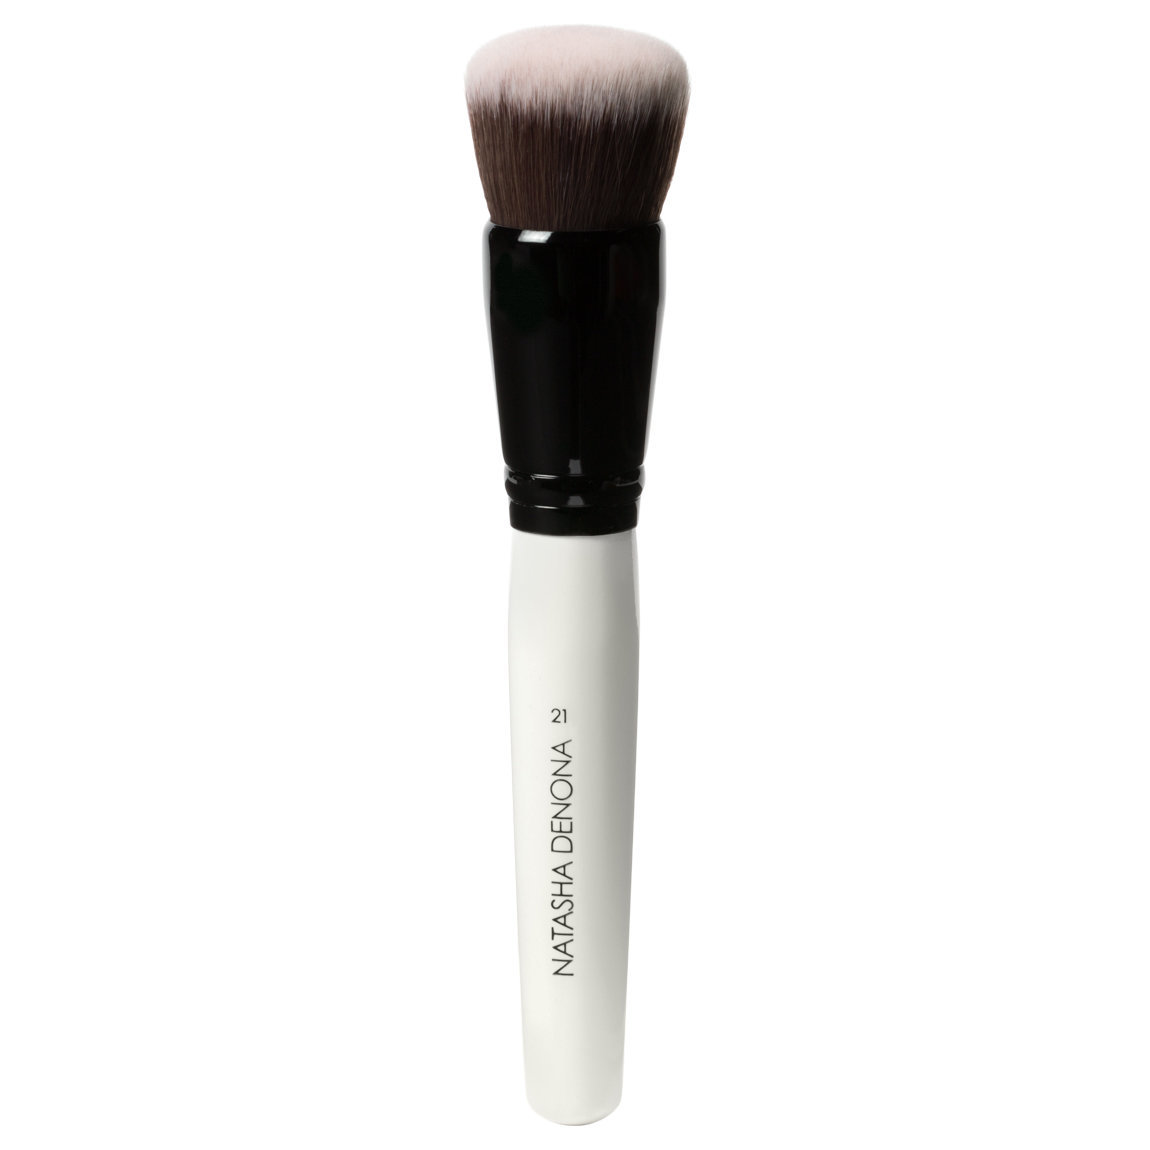 Natasha Denona #21 Body Shimmer Brush product smear.